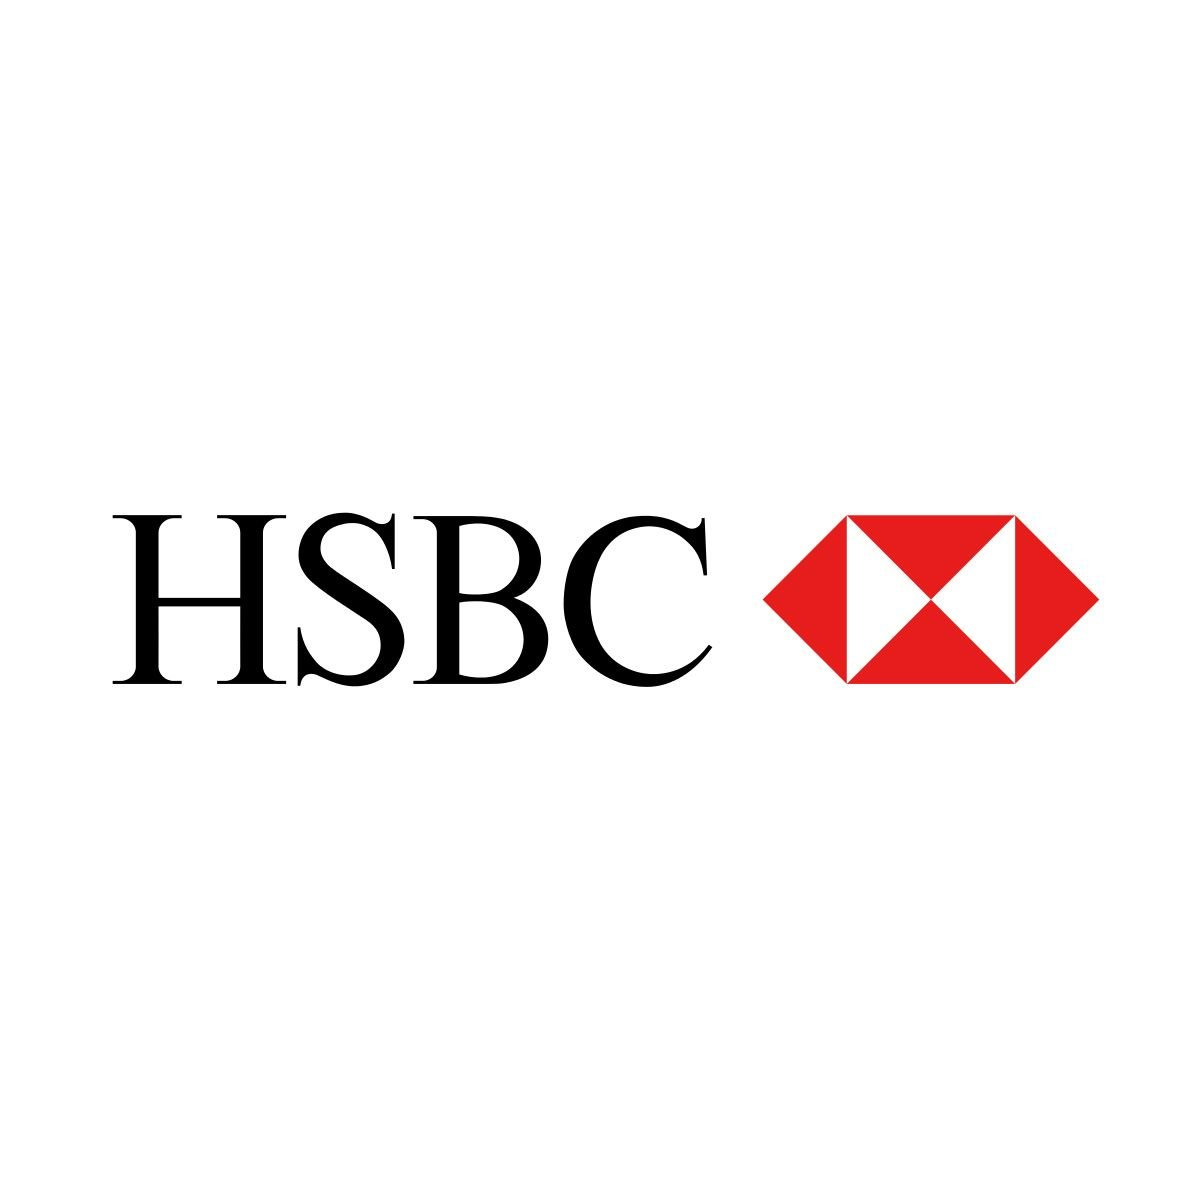 HSBC Logo - Welcome to HSBC UK banking products including current accounts ...